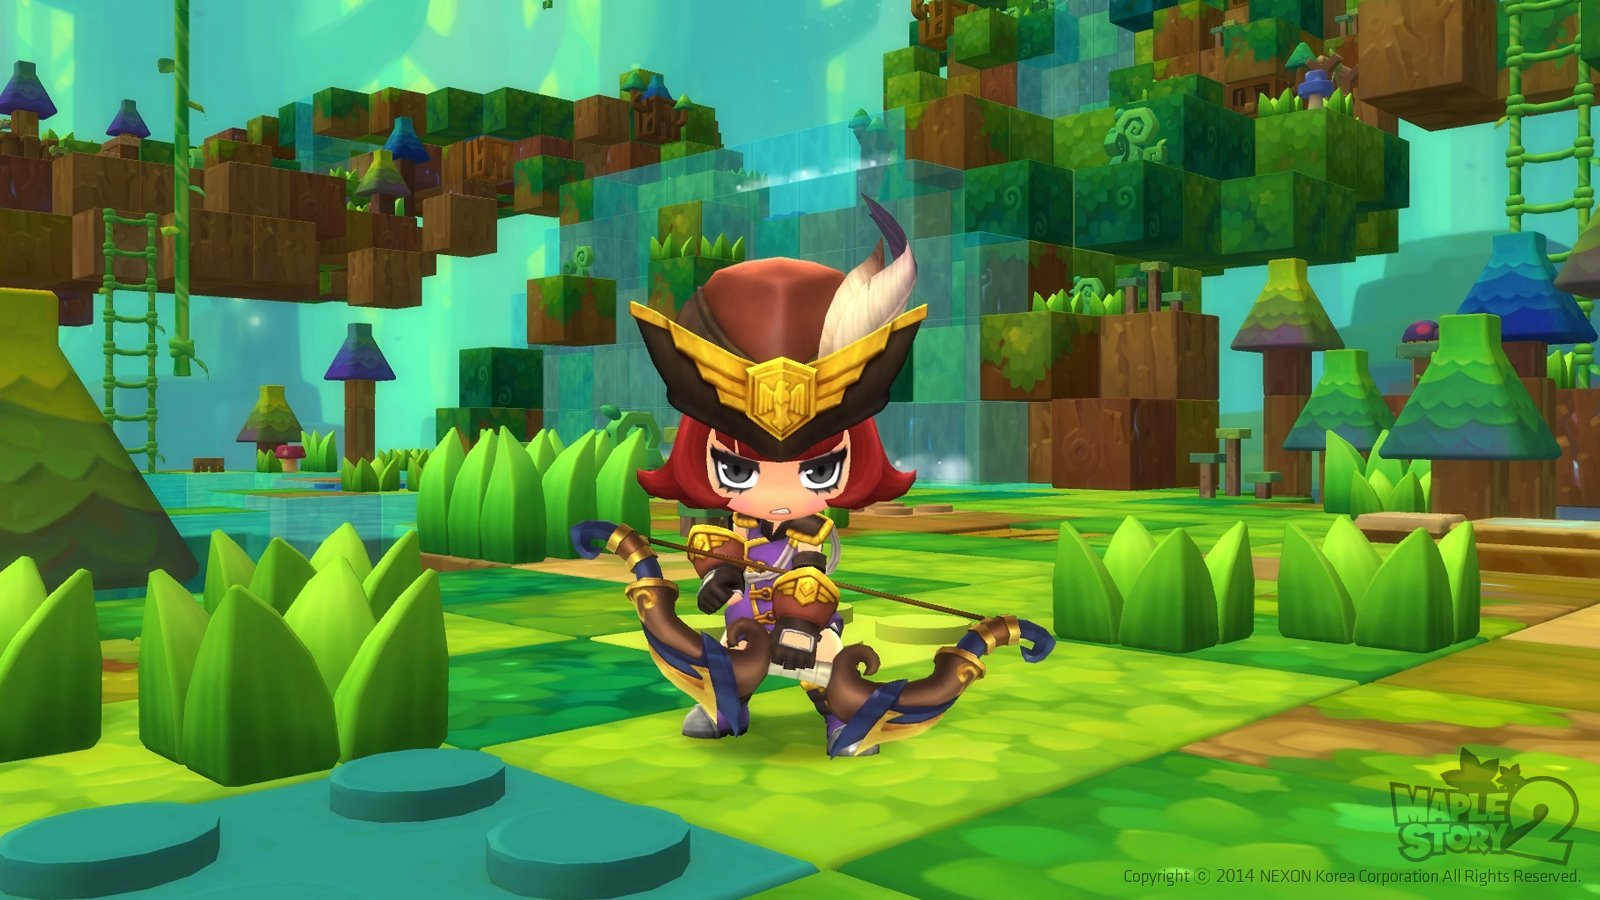 maplestory-2-wallpaper-1